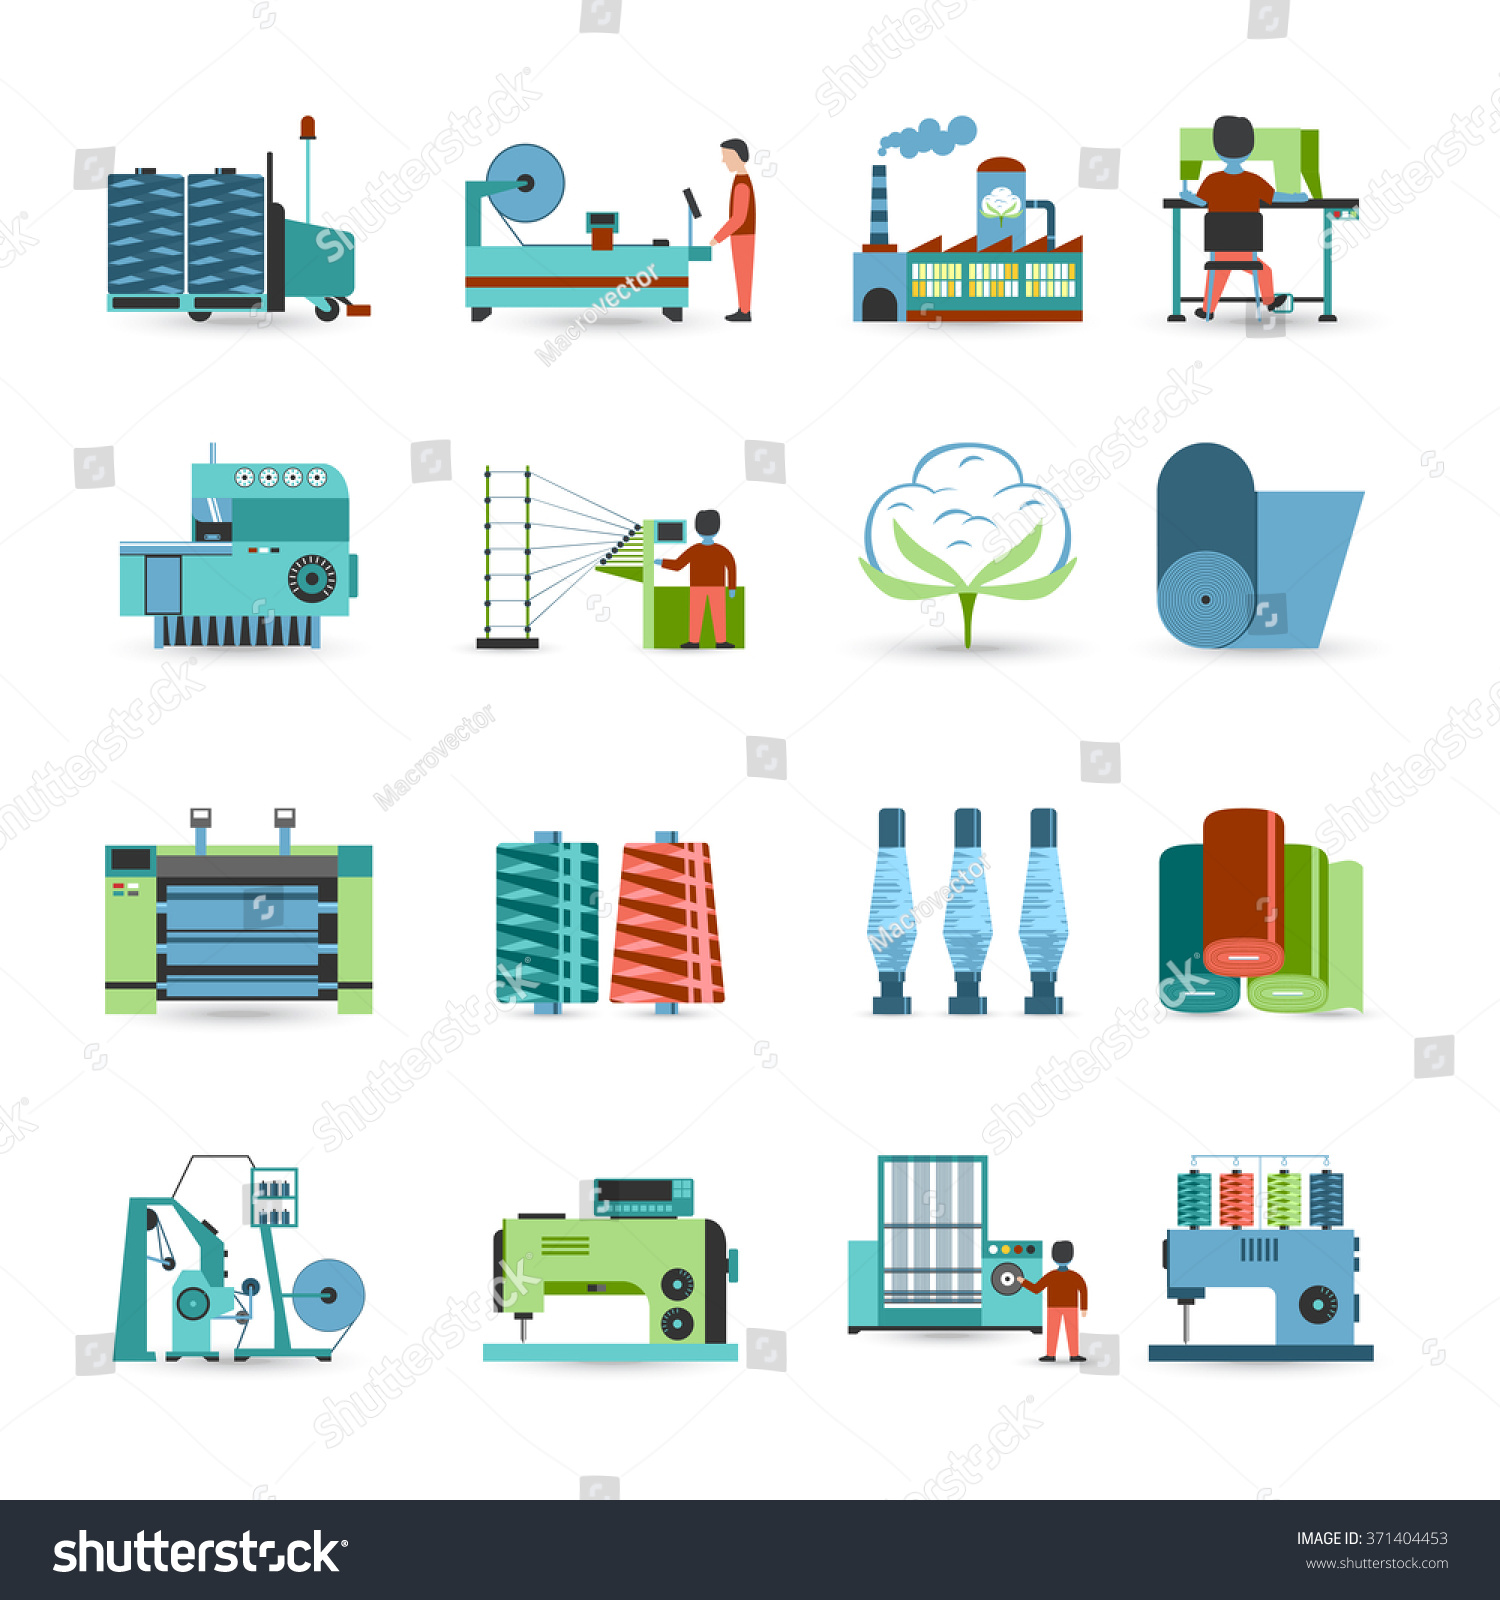 Textile manufacturing process flat icons collection stock vector textile manufacturing process flat icons collection with weaving yarn machinery equipment and clothes fabrication abstract isolated nvjuhfo Images